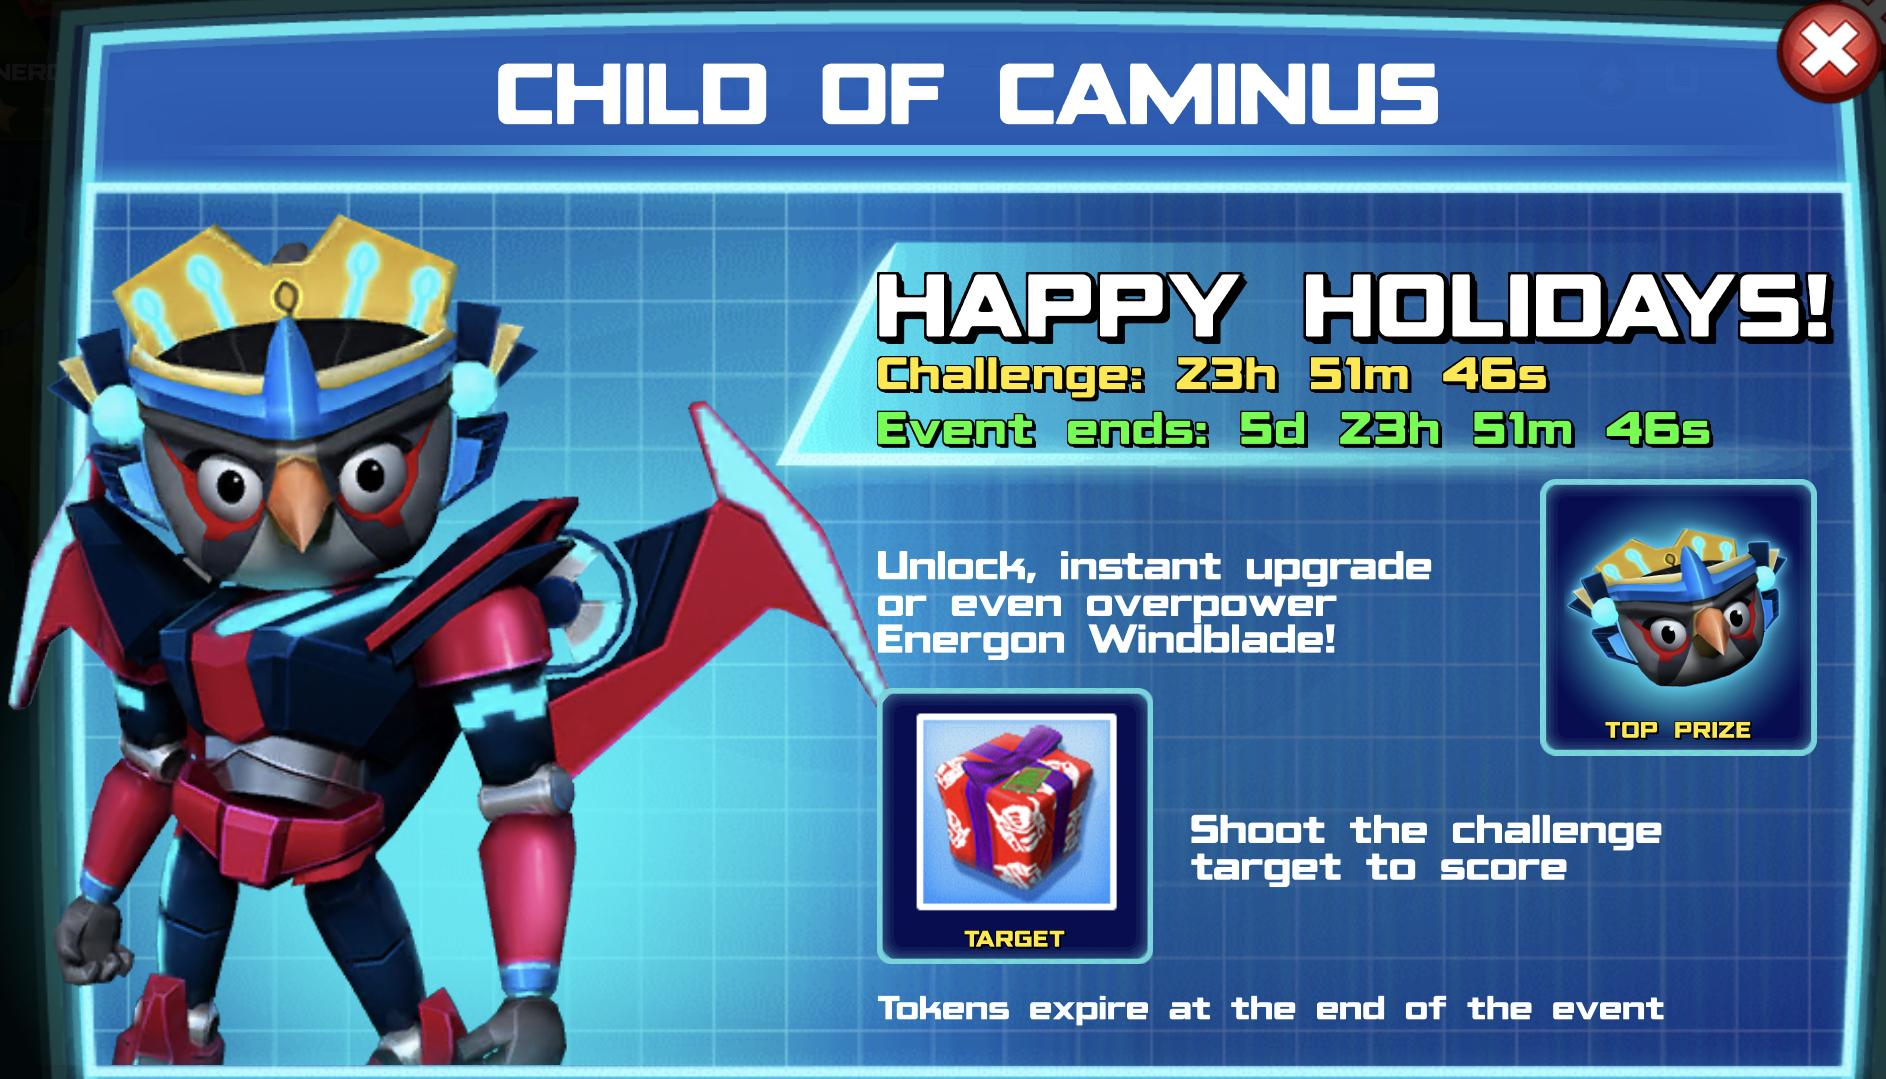 The event banner for Child of Caminus